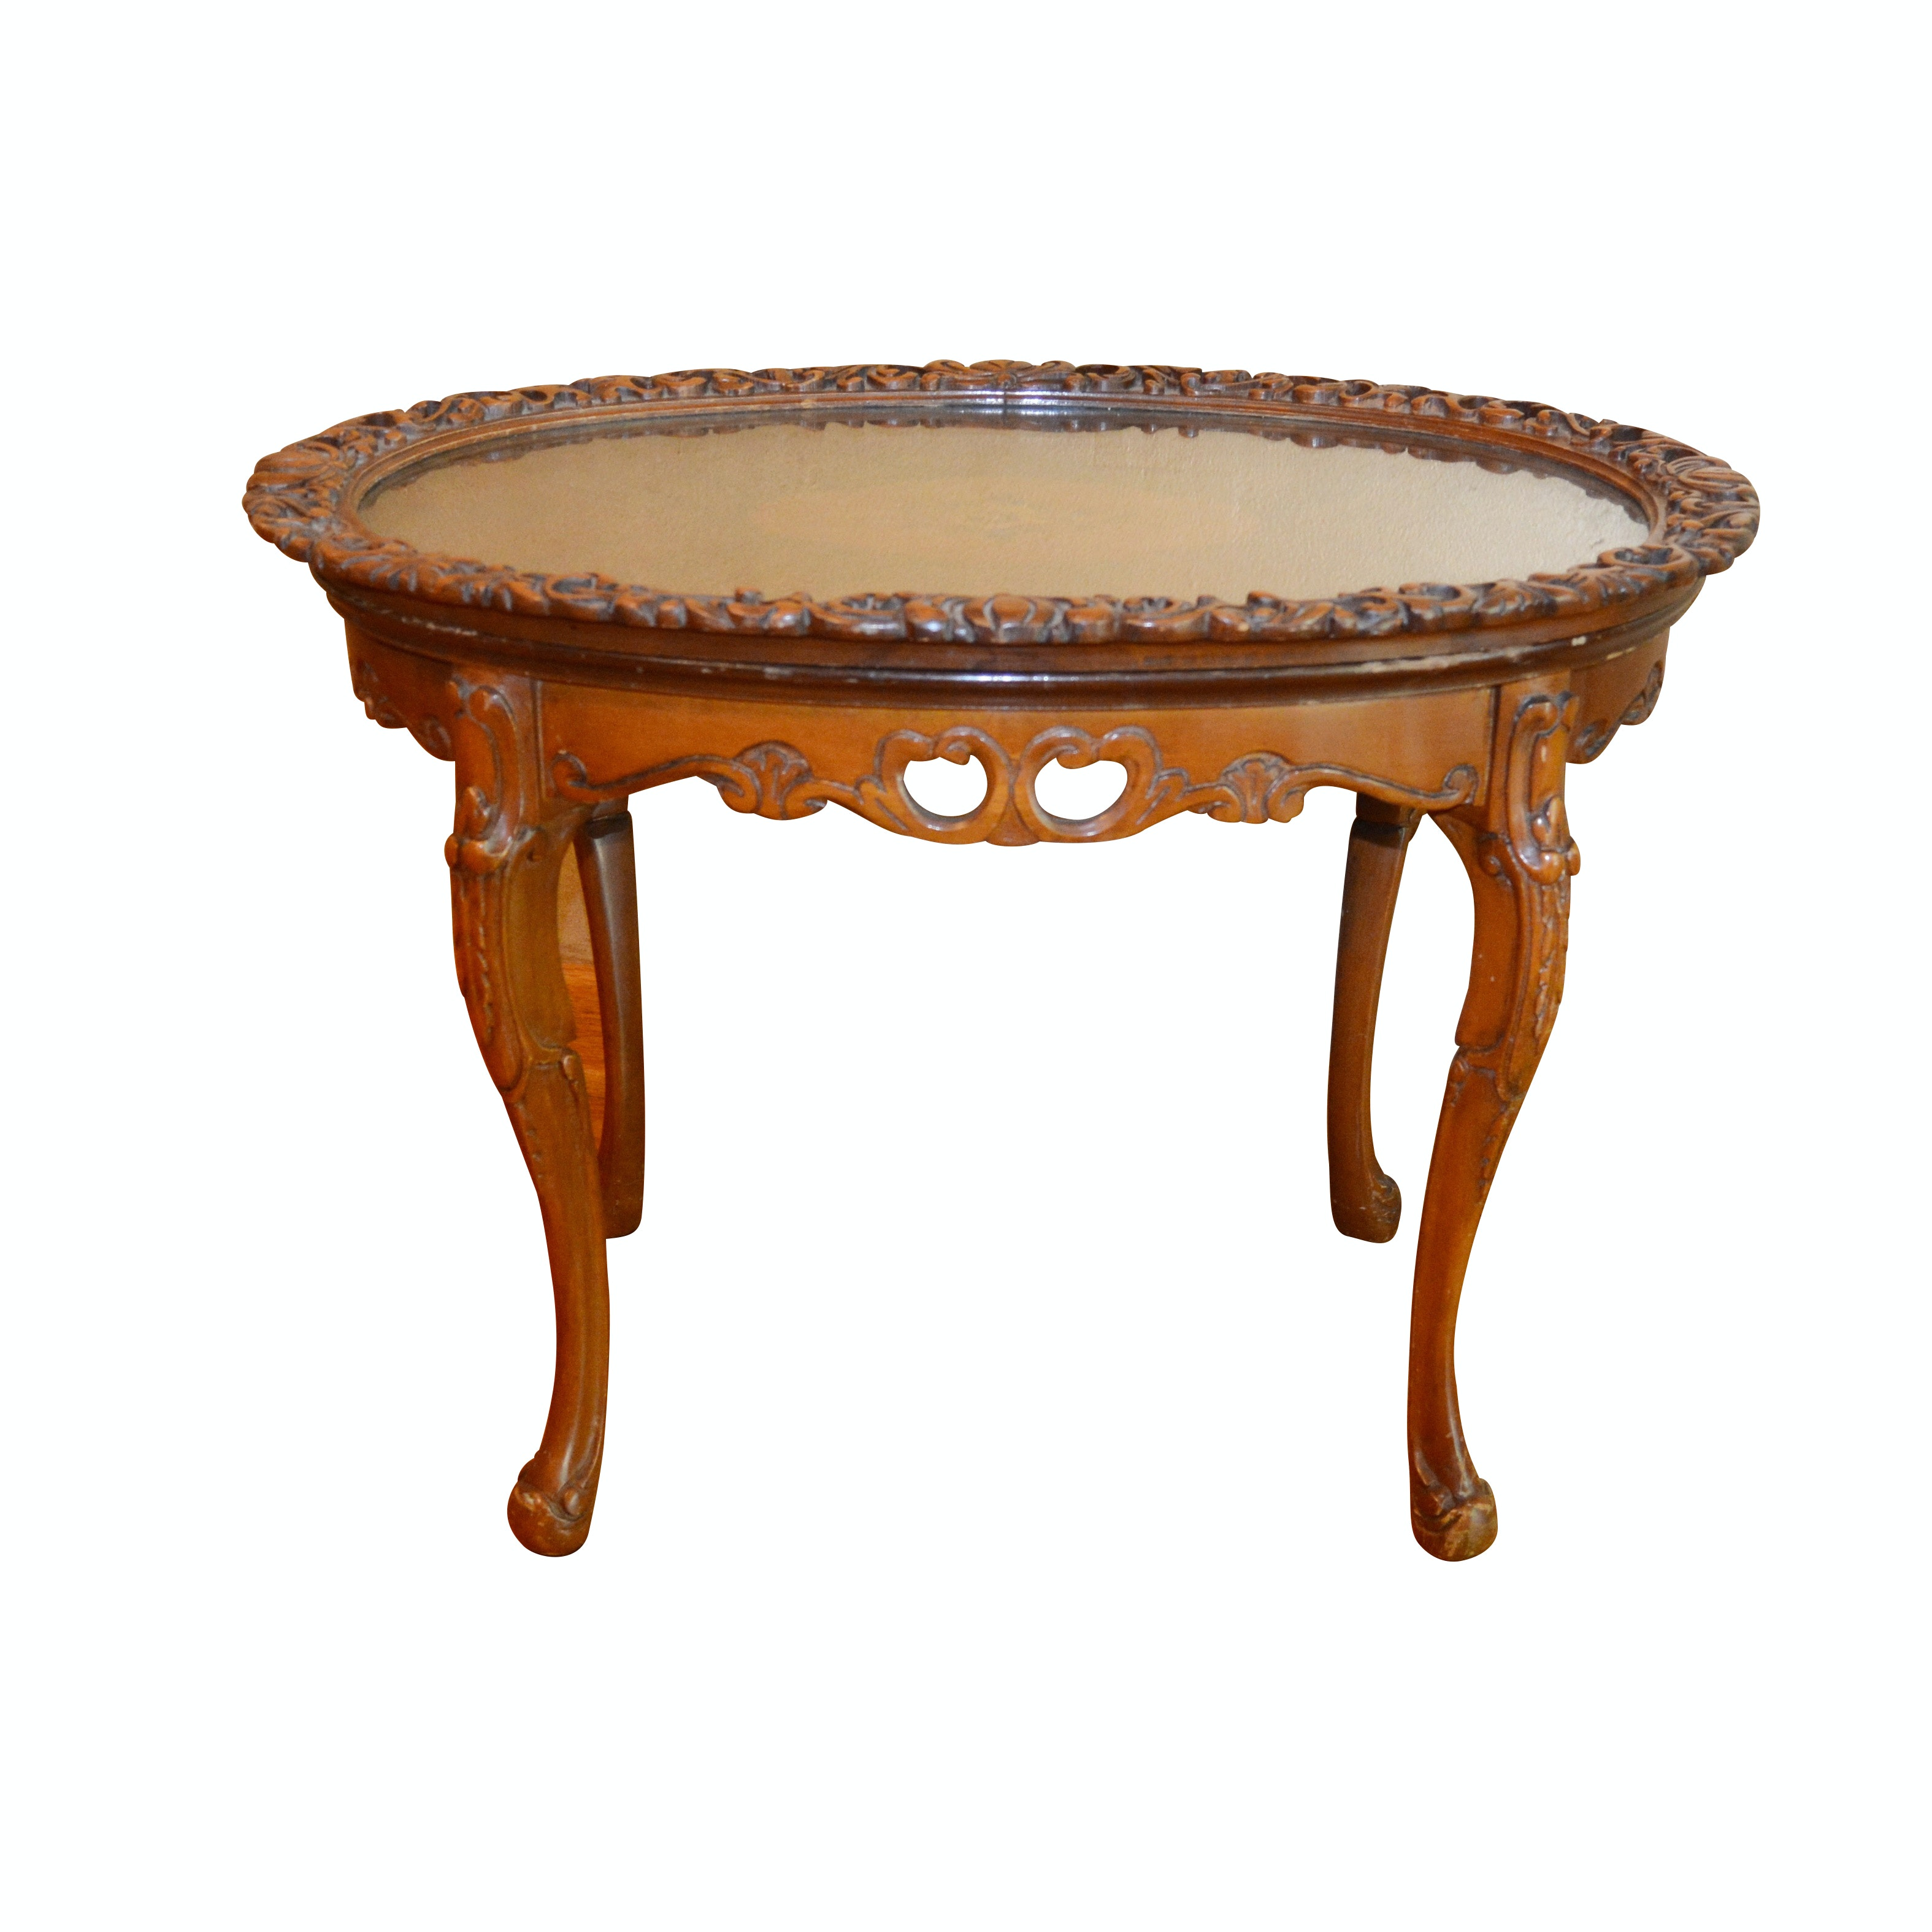 Rococo Style Carved Edge Glass Top Marquetry and Fruitwood Table, 20th Century